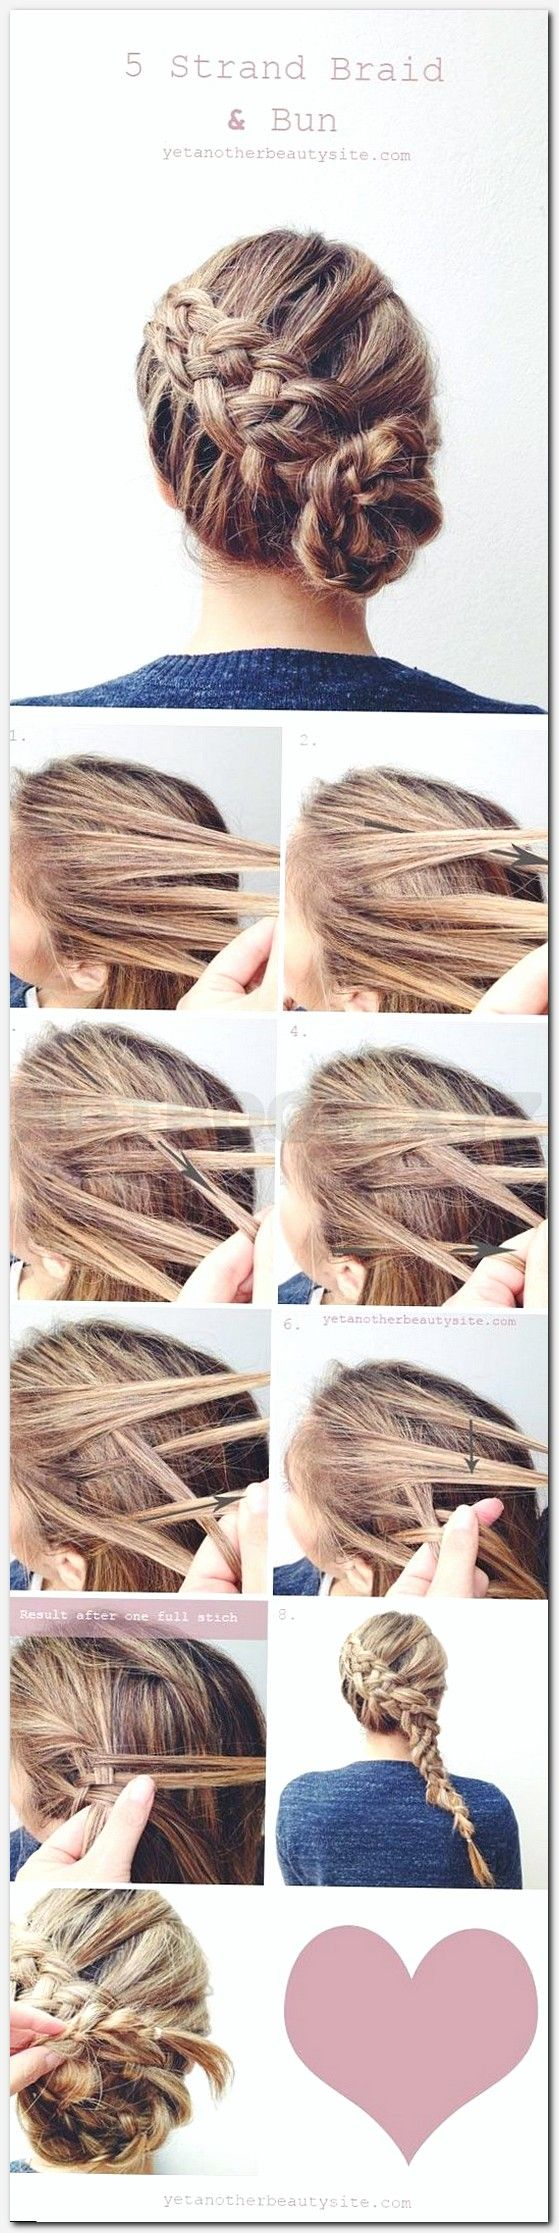 natural hair tips, haircuts for fine hair with bangs, medium hairstyles curly hair, easy simple hairstyles for long hair, spring hair trends 2017, new hairstyle for, pictures of short hairstyles for ladies, mid length haircuts women, hairstyle of short hair, latest hair trends 2017, sassy short hair 2017, some hairstyles for medium hair, easy step by step hairstyles for long hair, medium long hair style, haircuts for women layers, good men hairstyles